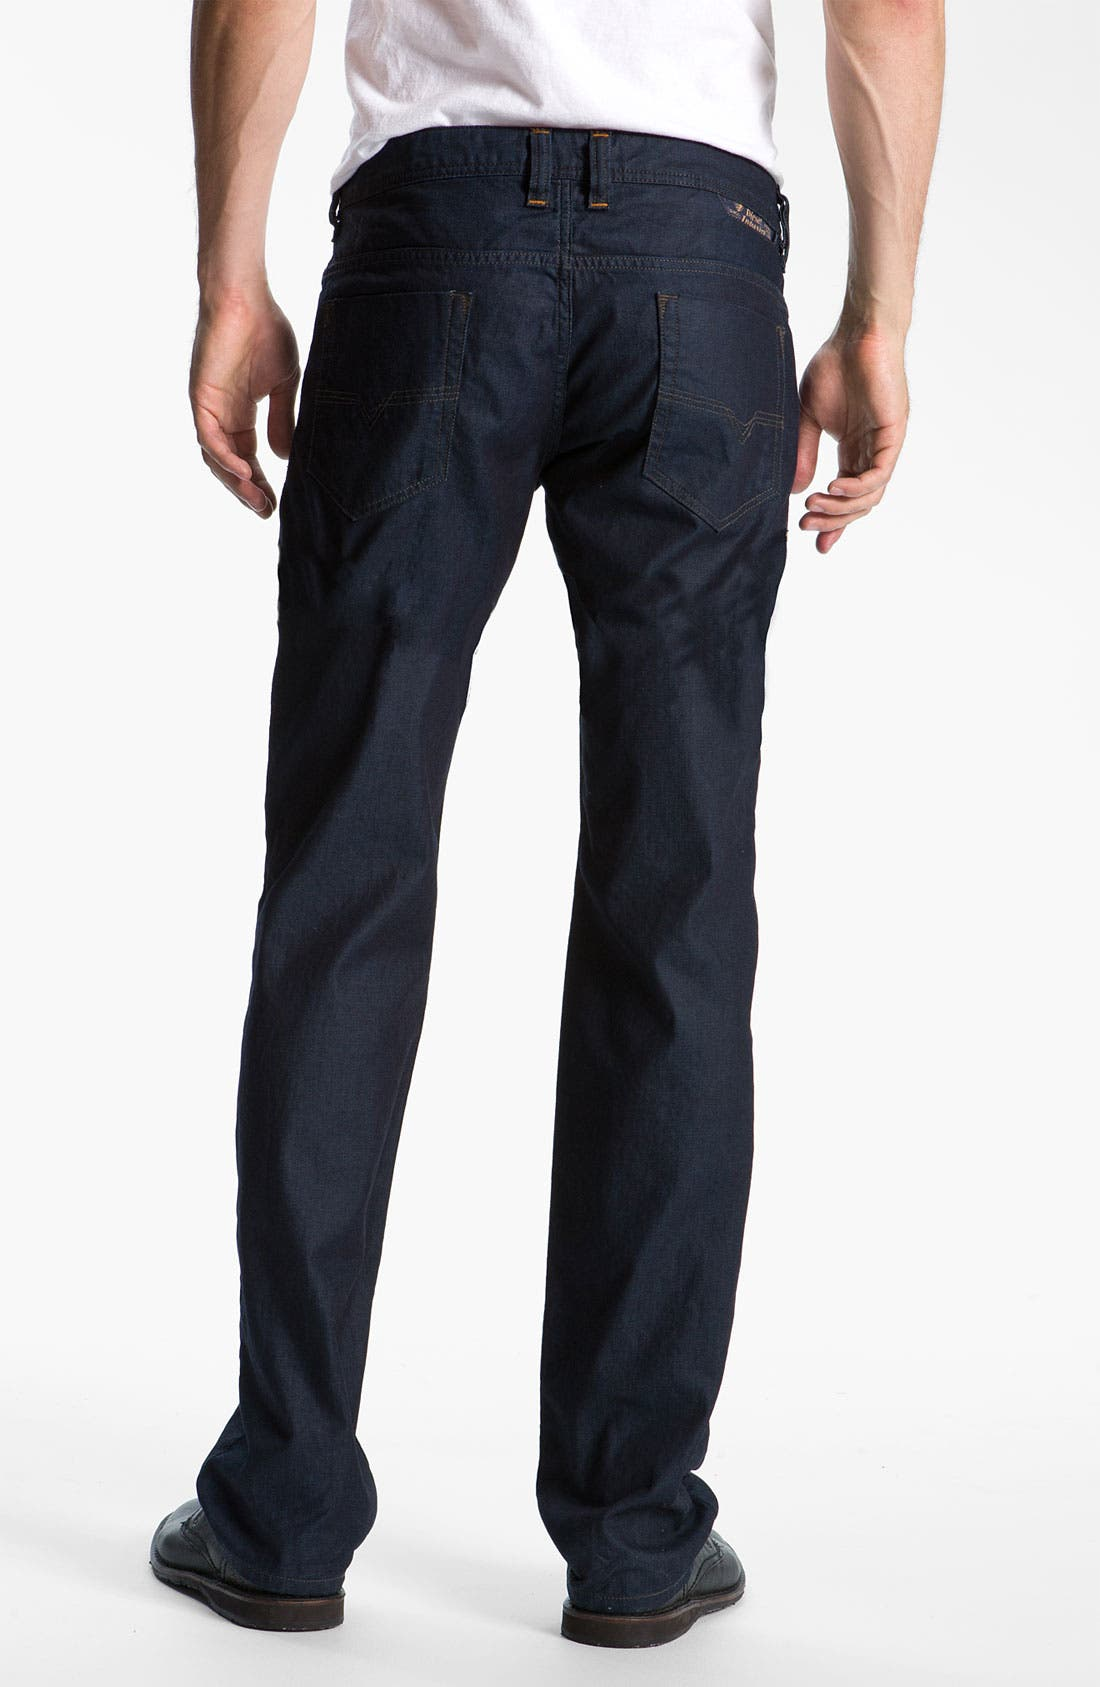 Alternate Image 1 Selected - DIESEL® 'Safado' Slim Straight Leg Jeans (661D)